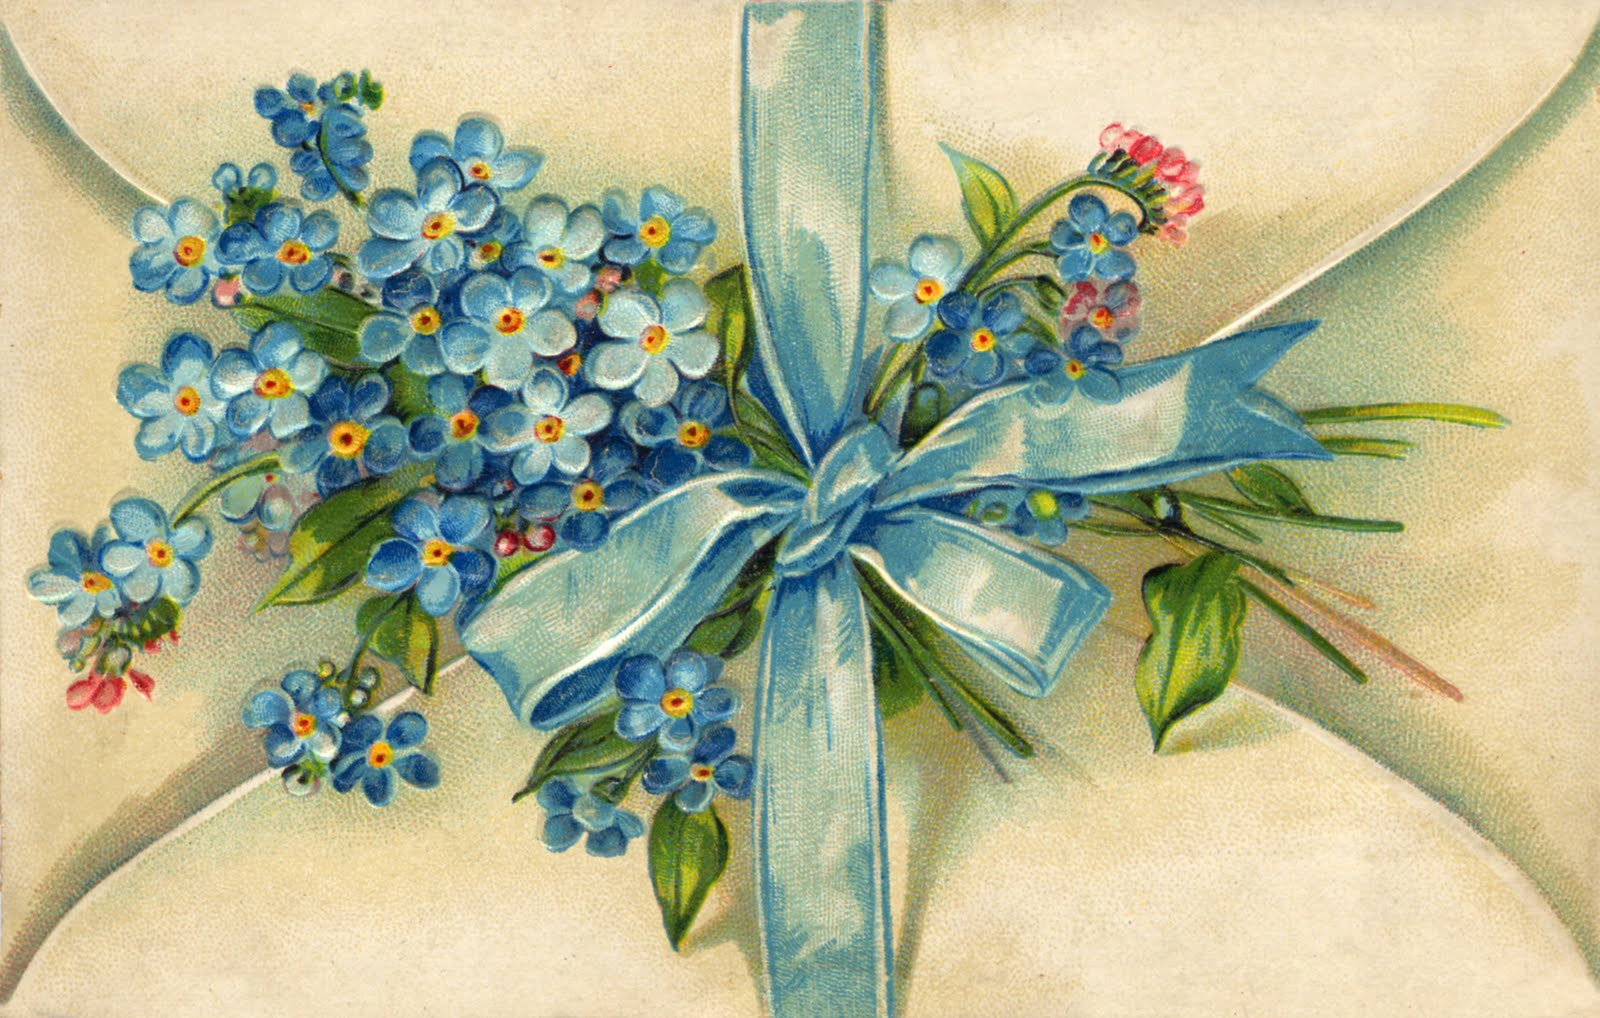 A Romantic Favourite - Forget Me Nots were often used as a decoration in Edwardian romantic stationery,like this postcard from the turn of the 20th century.